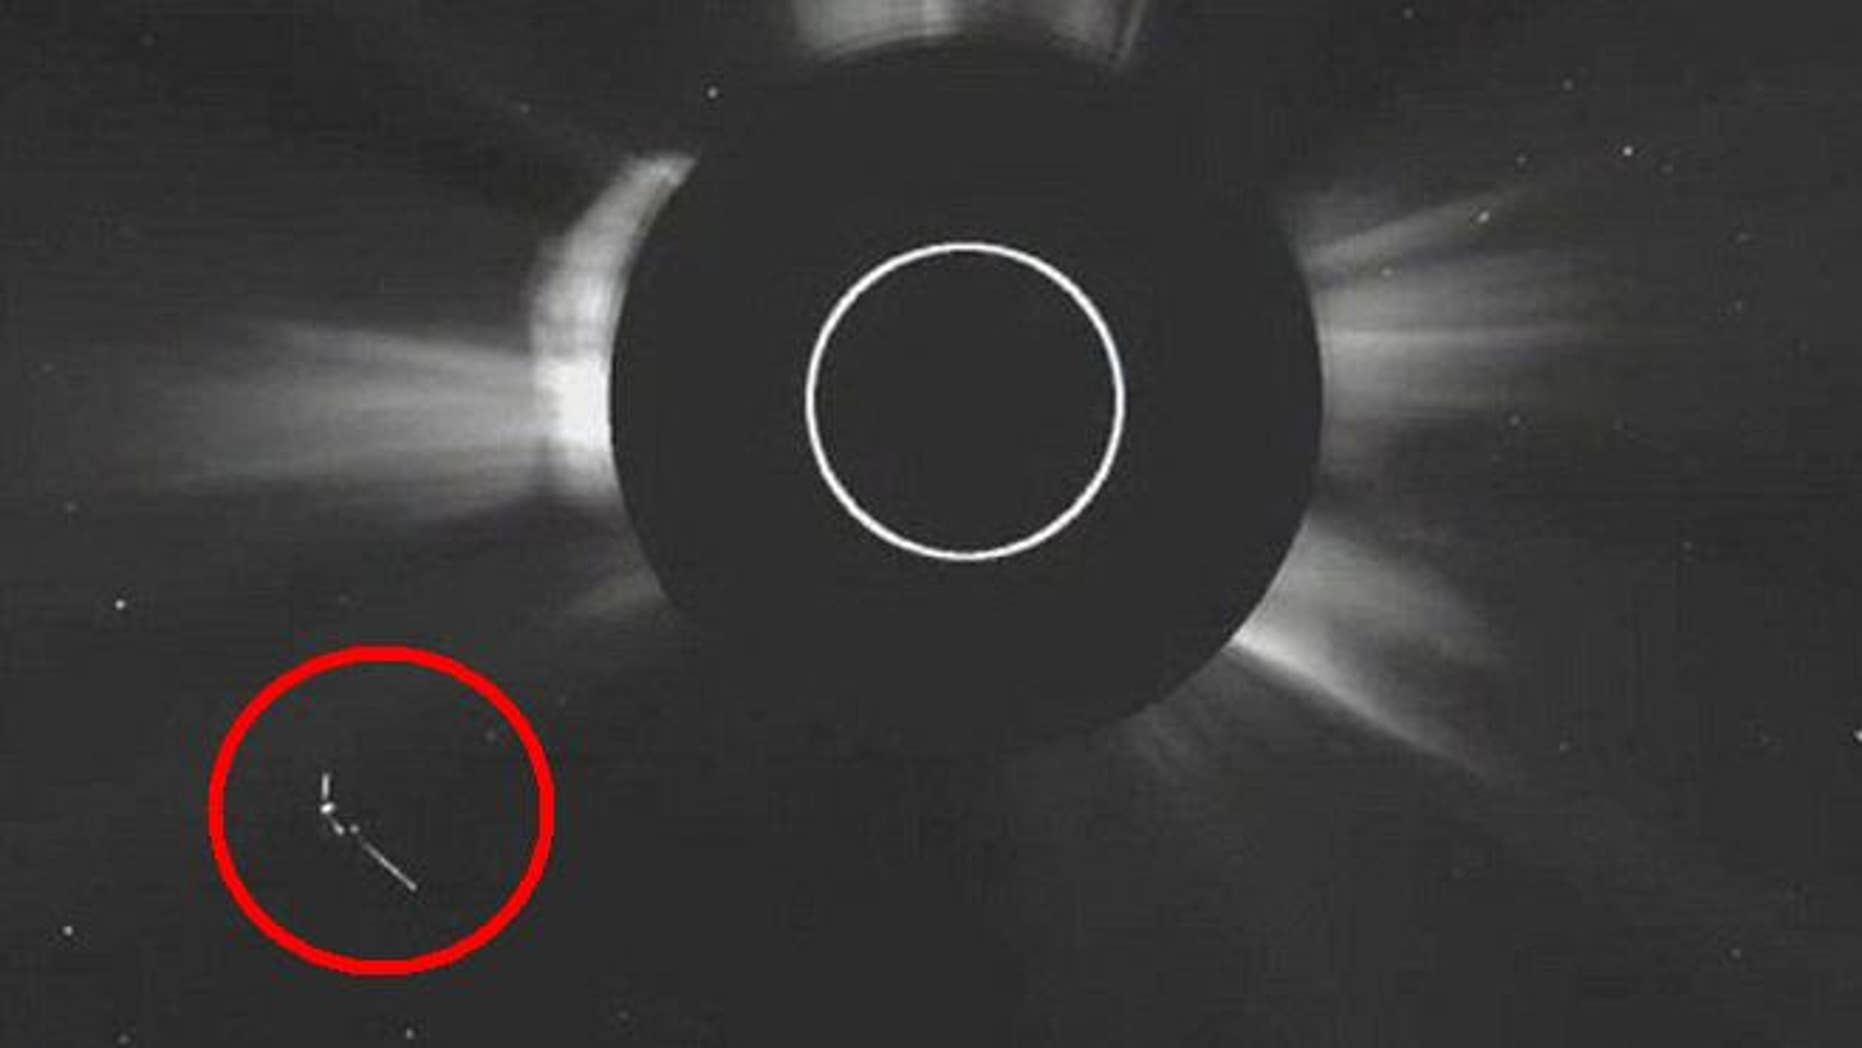 A strangely shaped object near the sun in a new NASA image has drawn the attention of UFO believers.